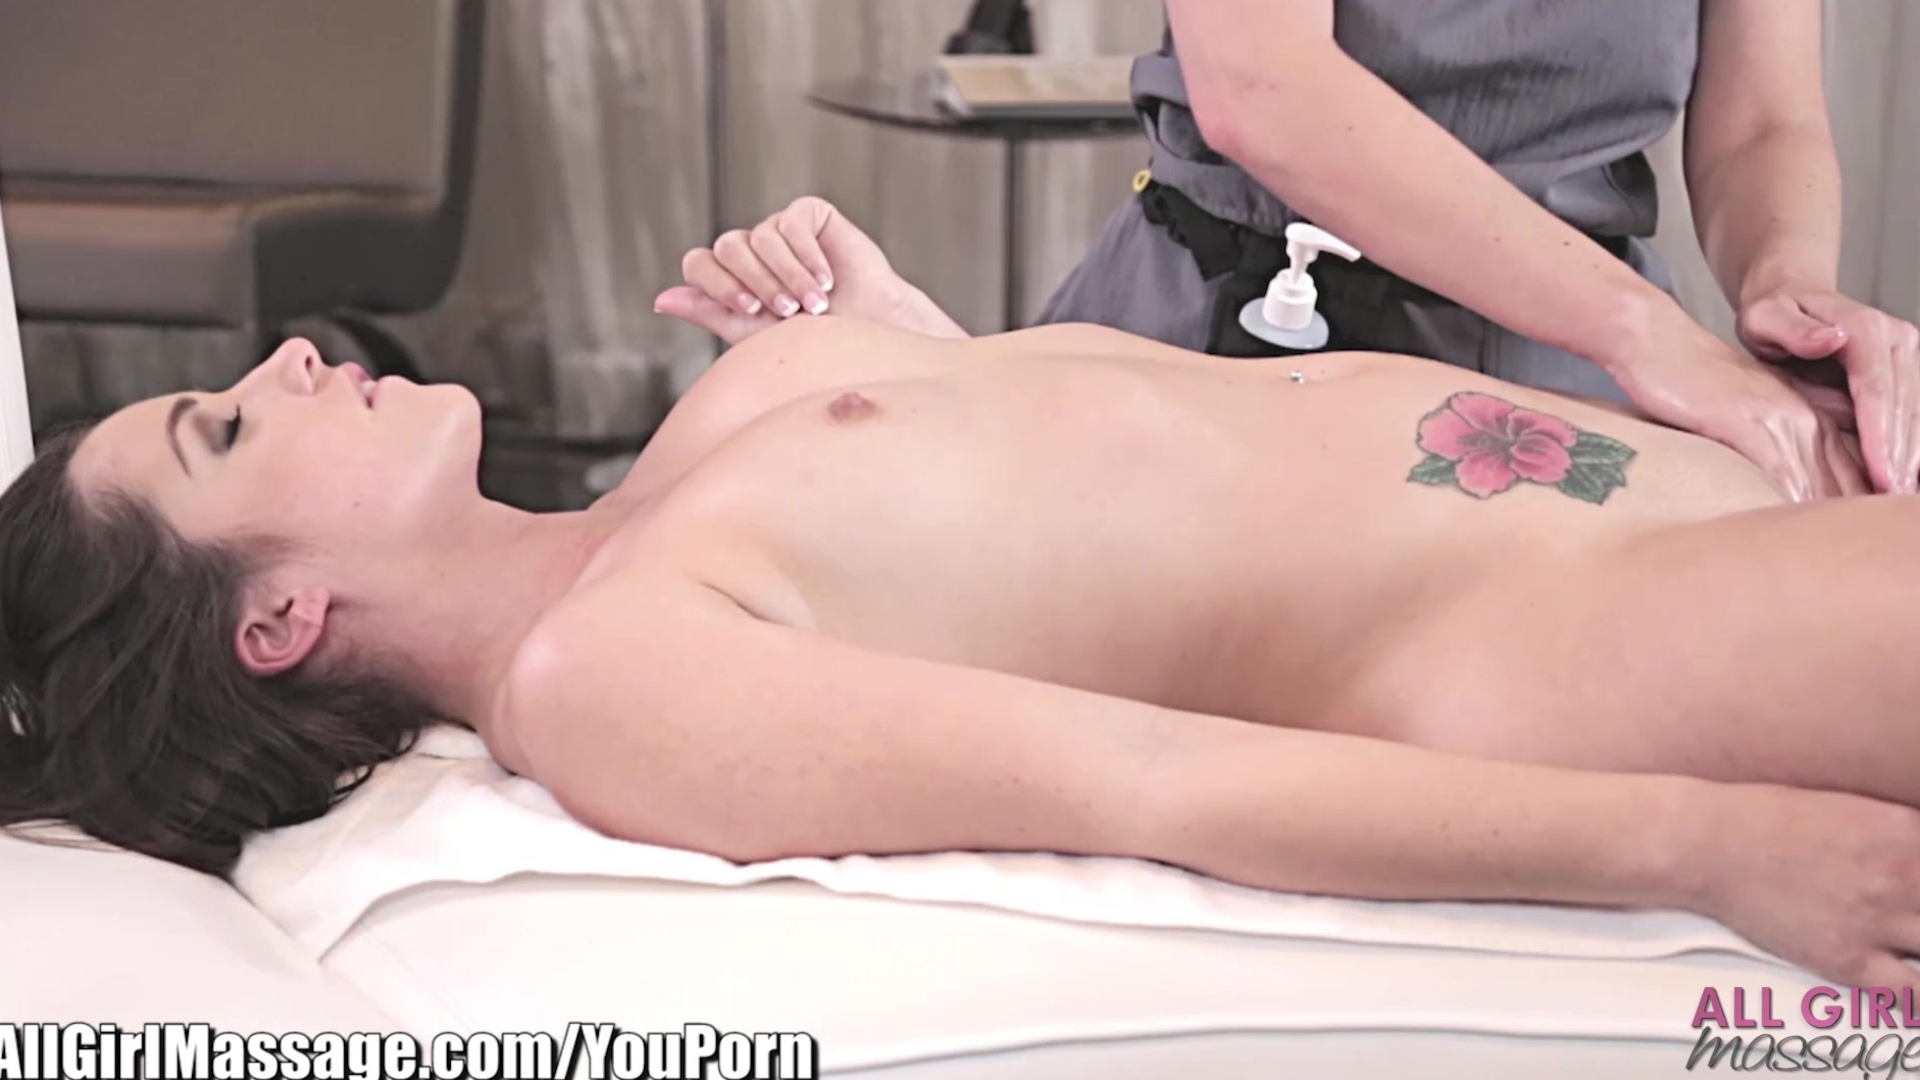 all girl massage youporn № 36472